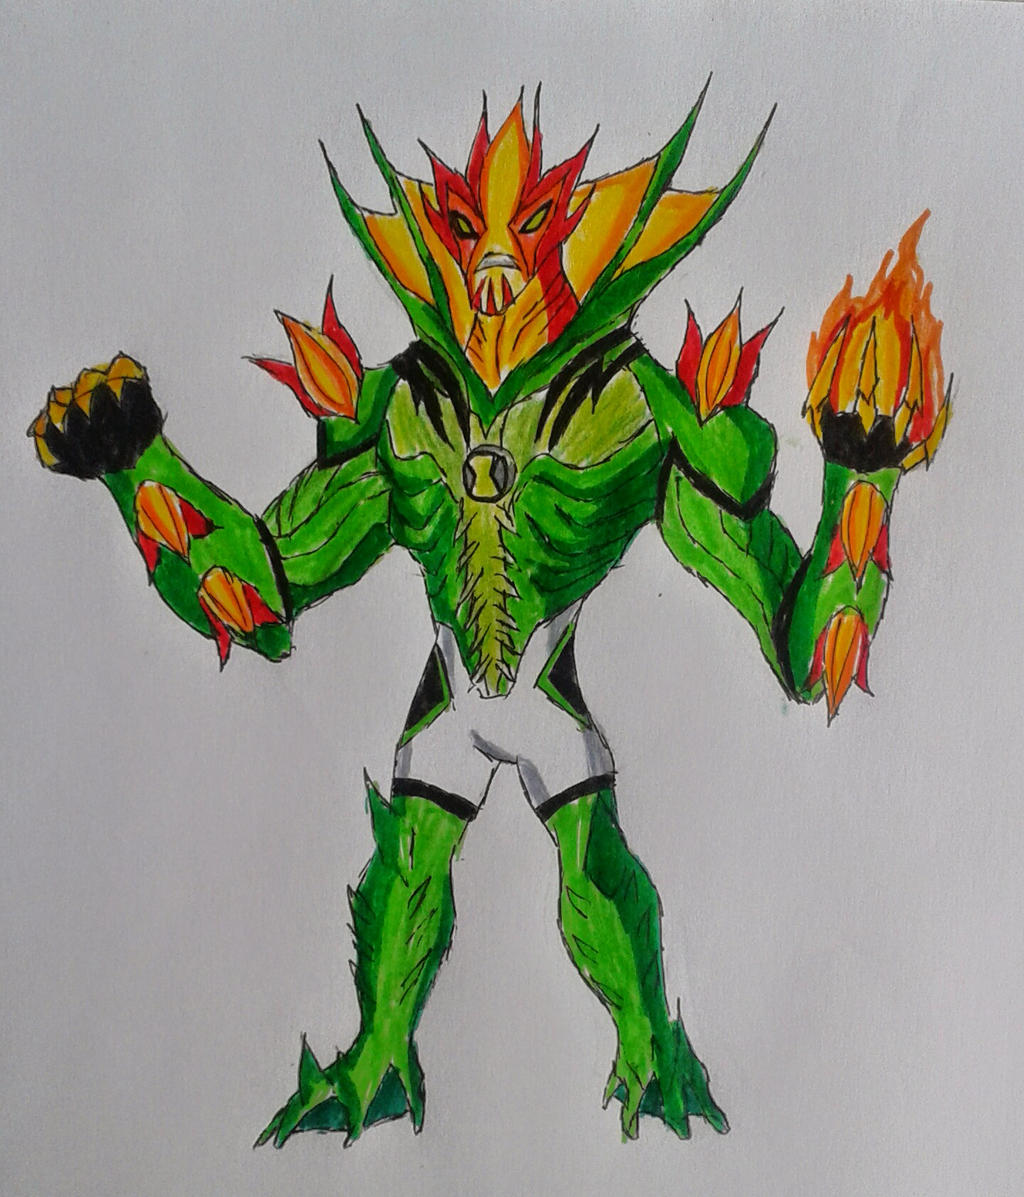 Ben 10000 Ultimate Alien: Swampfire Ben 10000 By Kamran10000 On DeviantArt